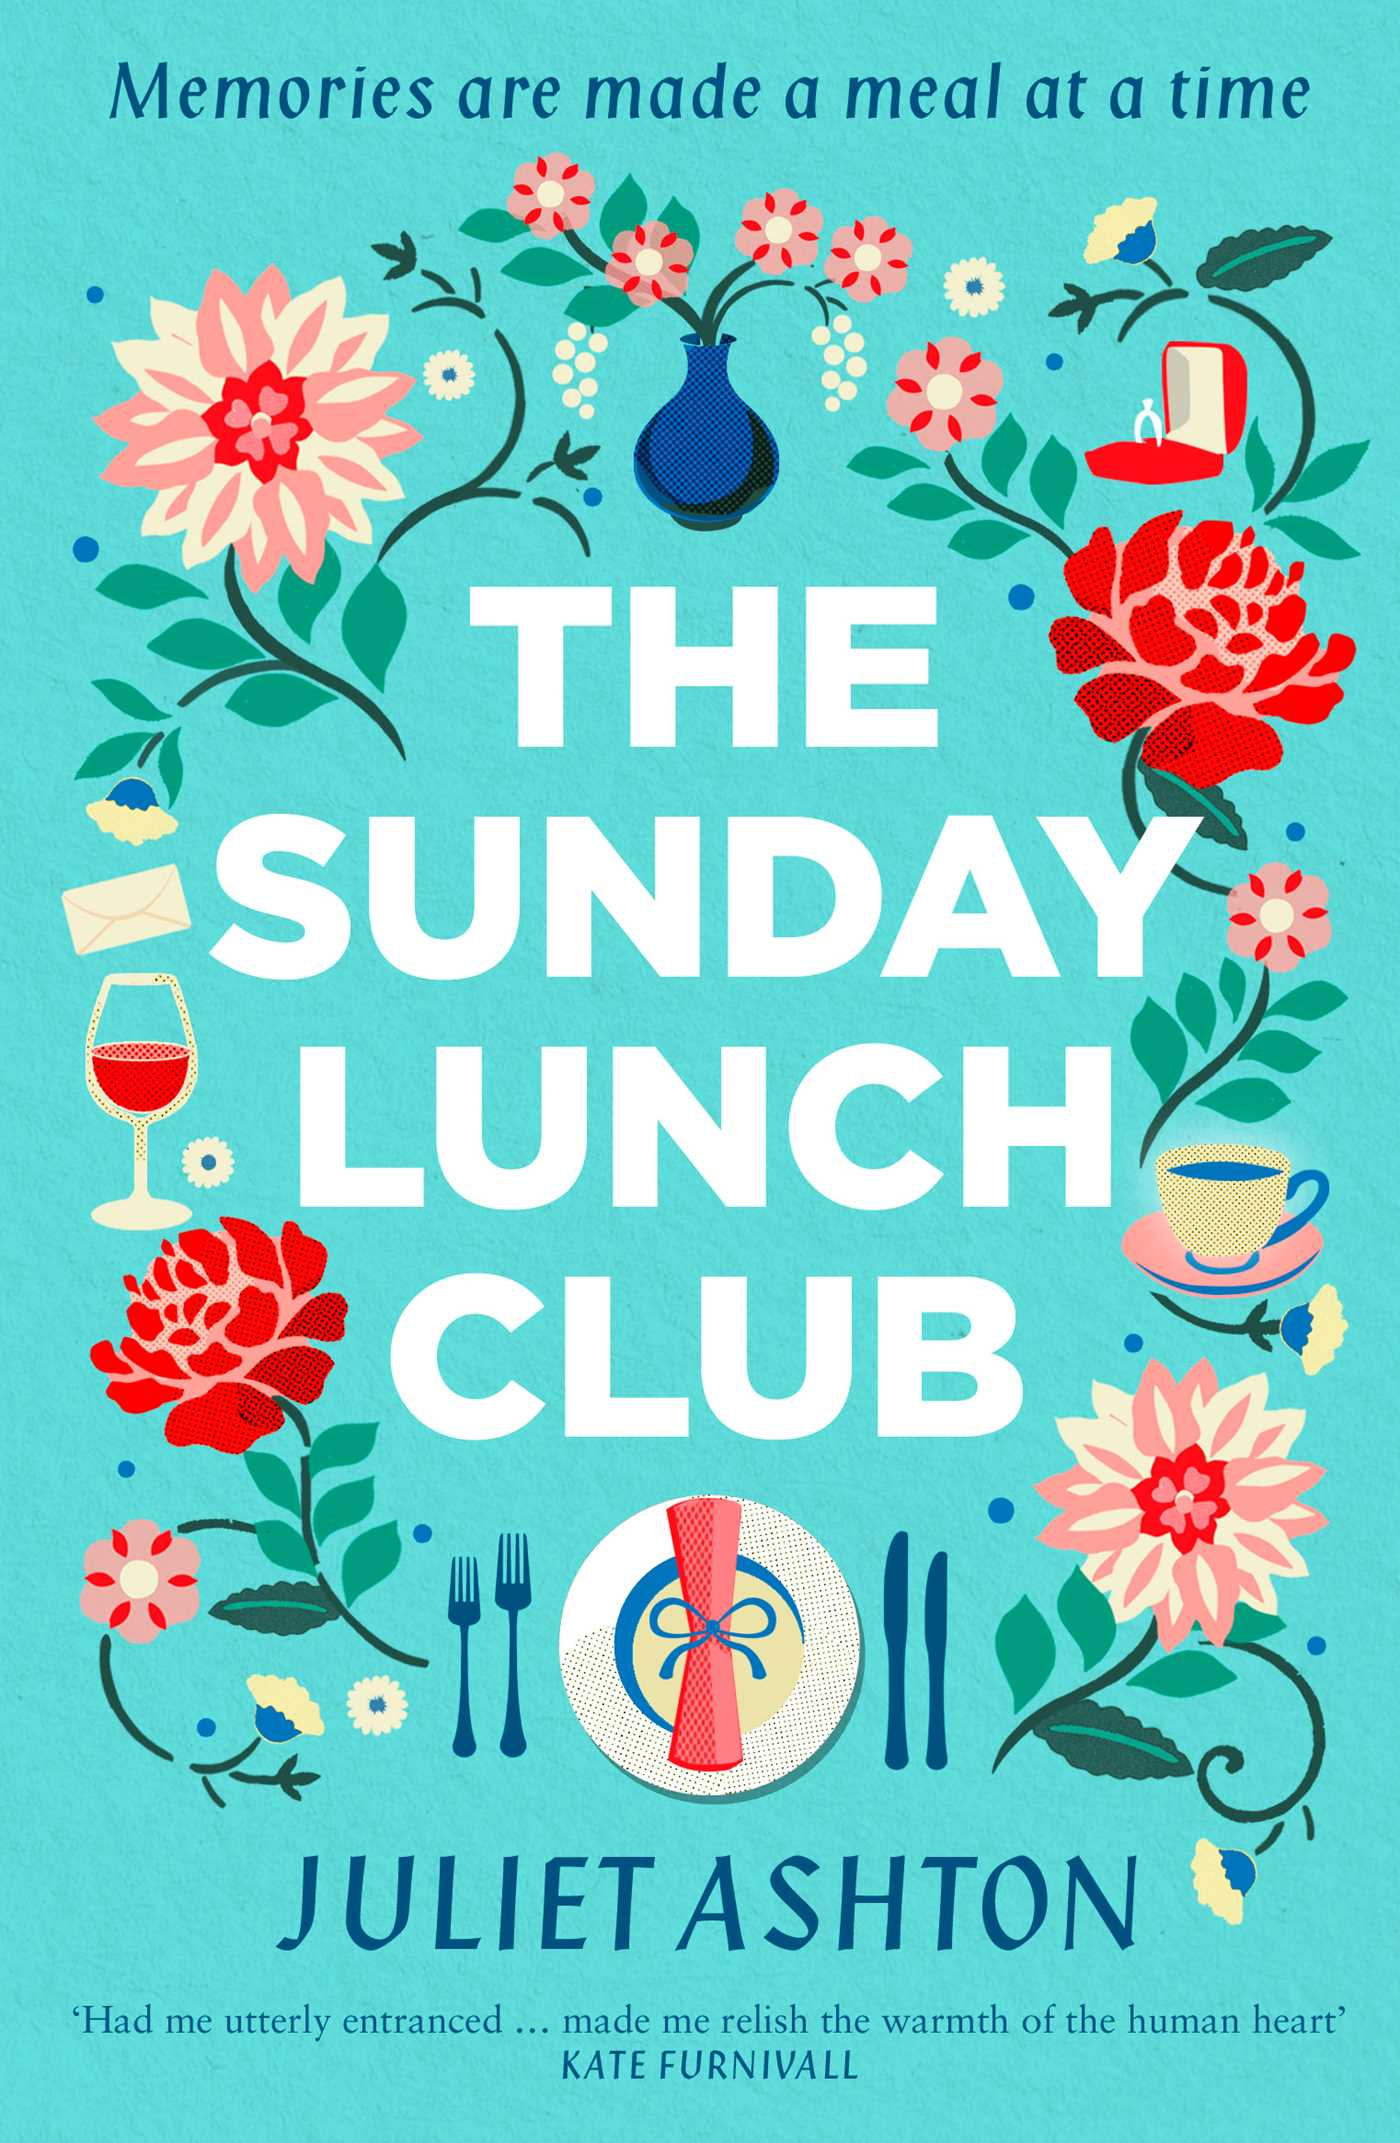 The Sunday Lunch Club by Juliet Ashton